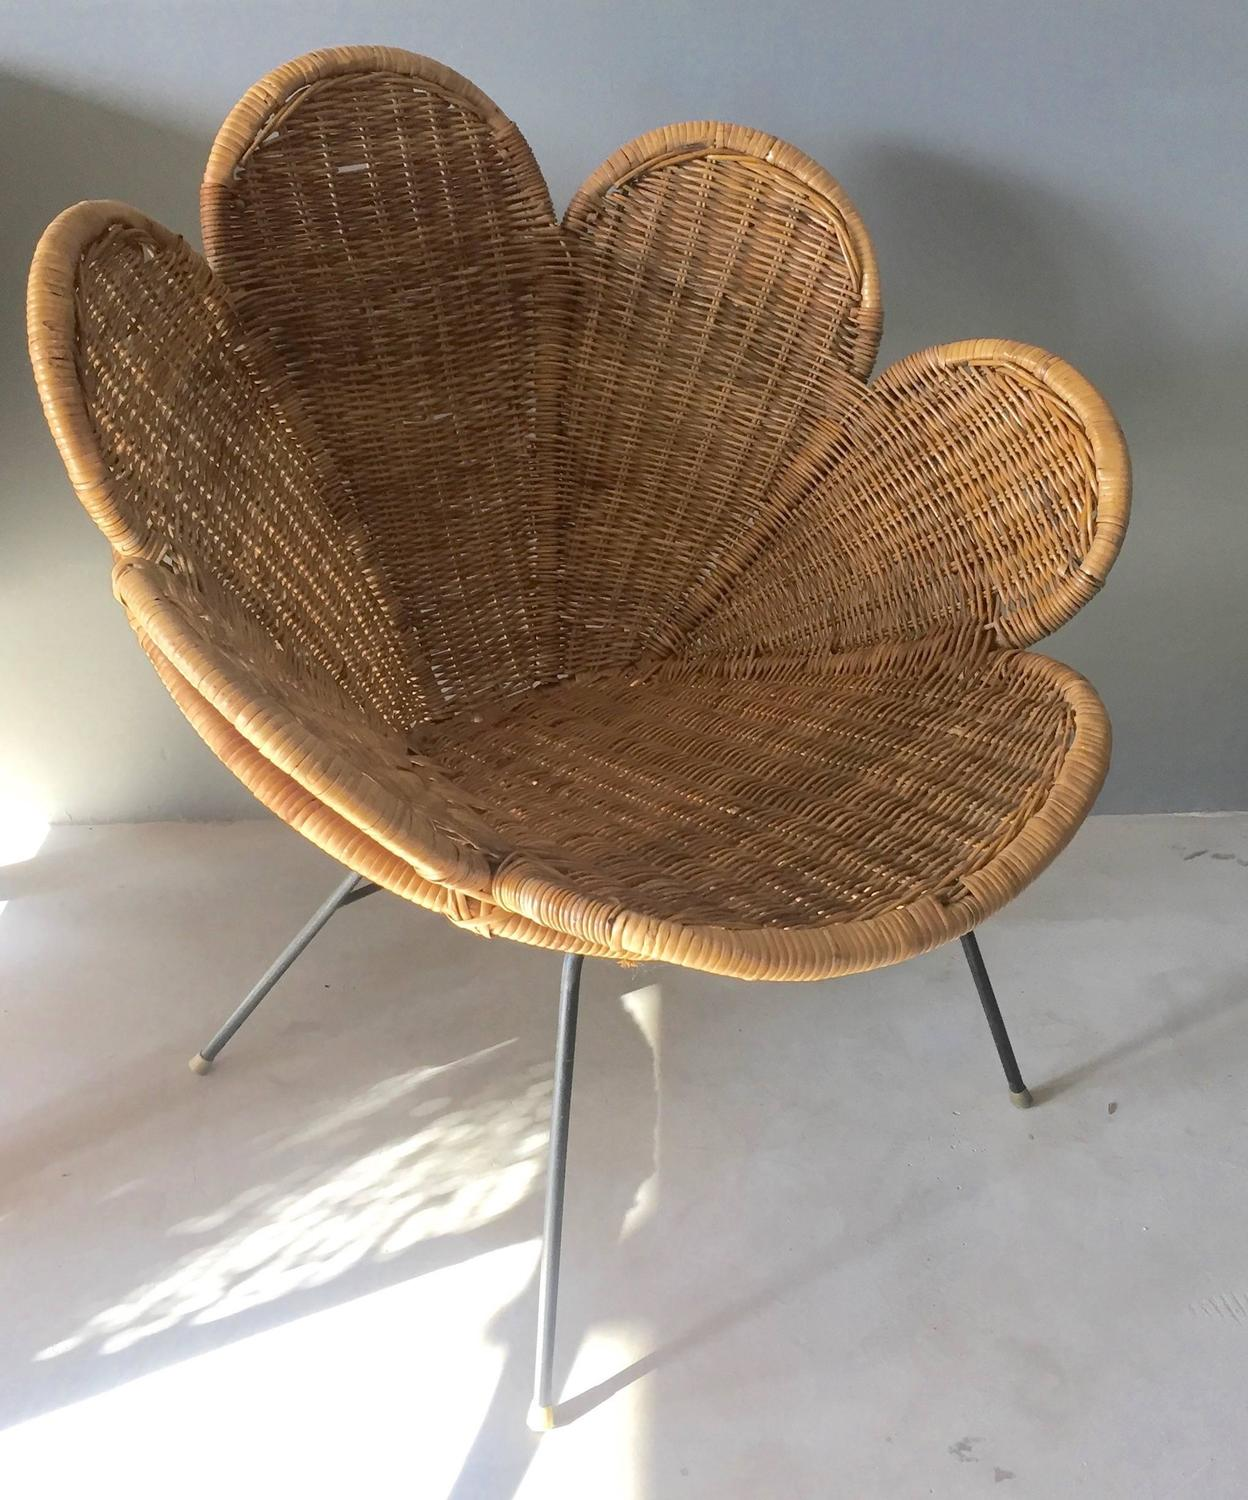 Rattan And Iron Flower Chair For Sale At 1stdibs